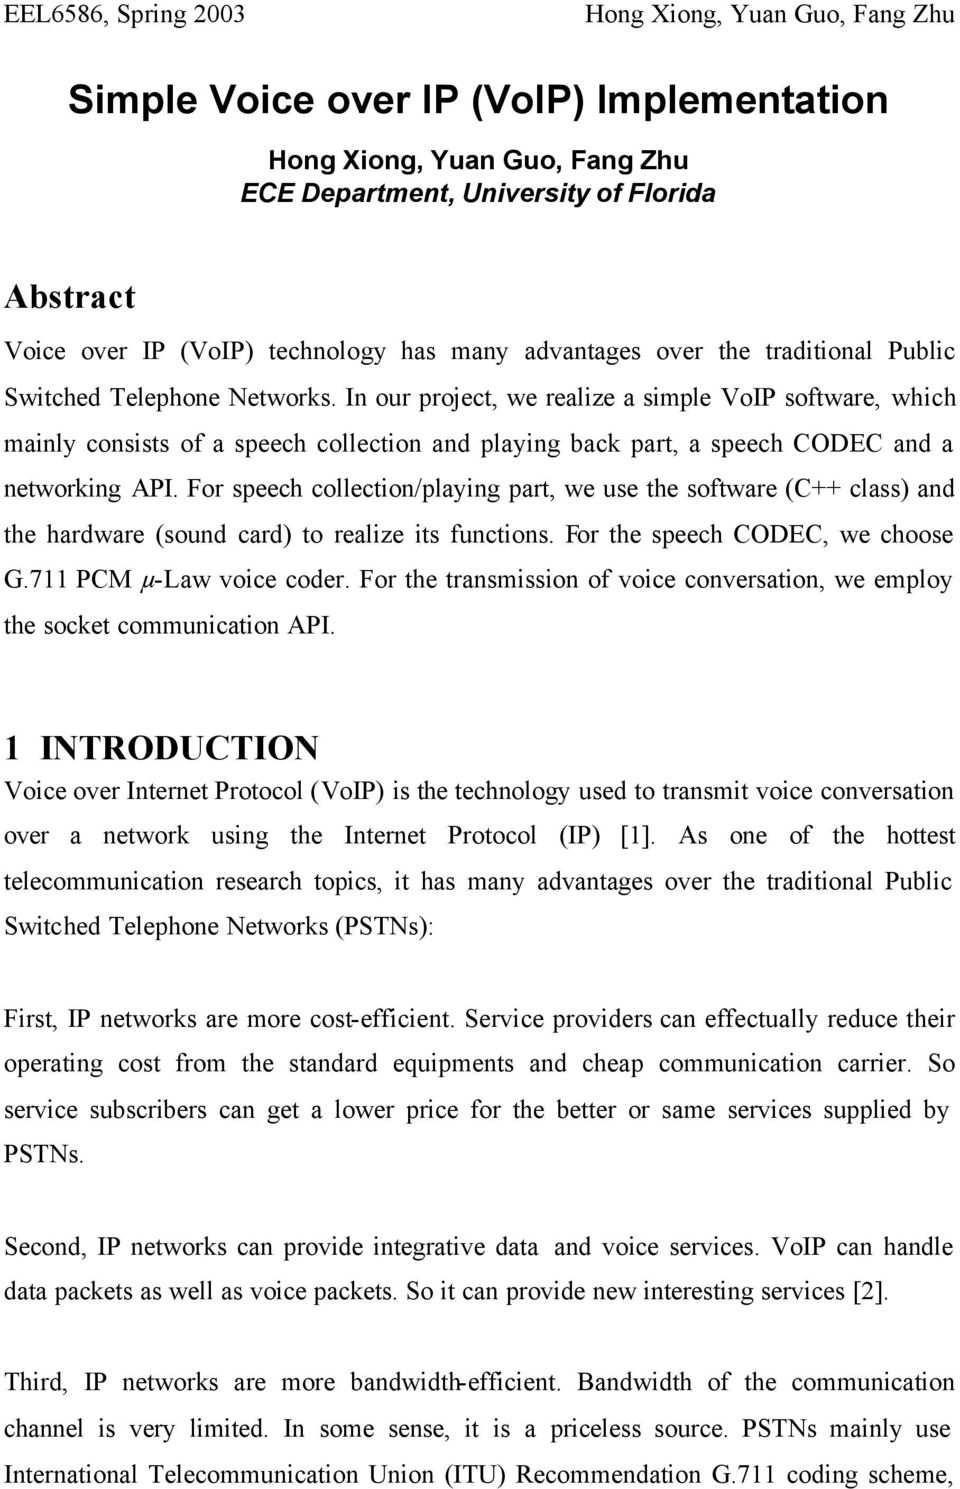 For speech collection/playing part, we use the software (C++ class) and the hardware (sound card) to realize its functions. For the speech CODEC, we choose G.711 PCM µ-law voice coder.